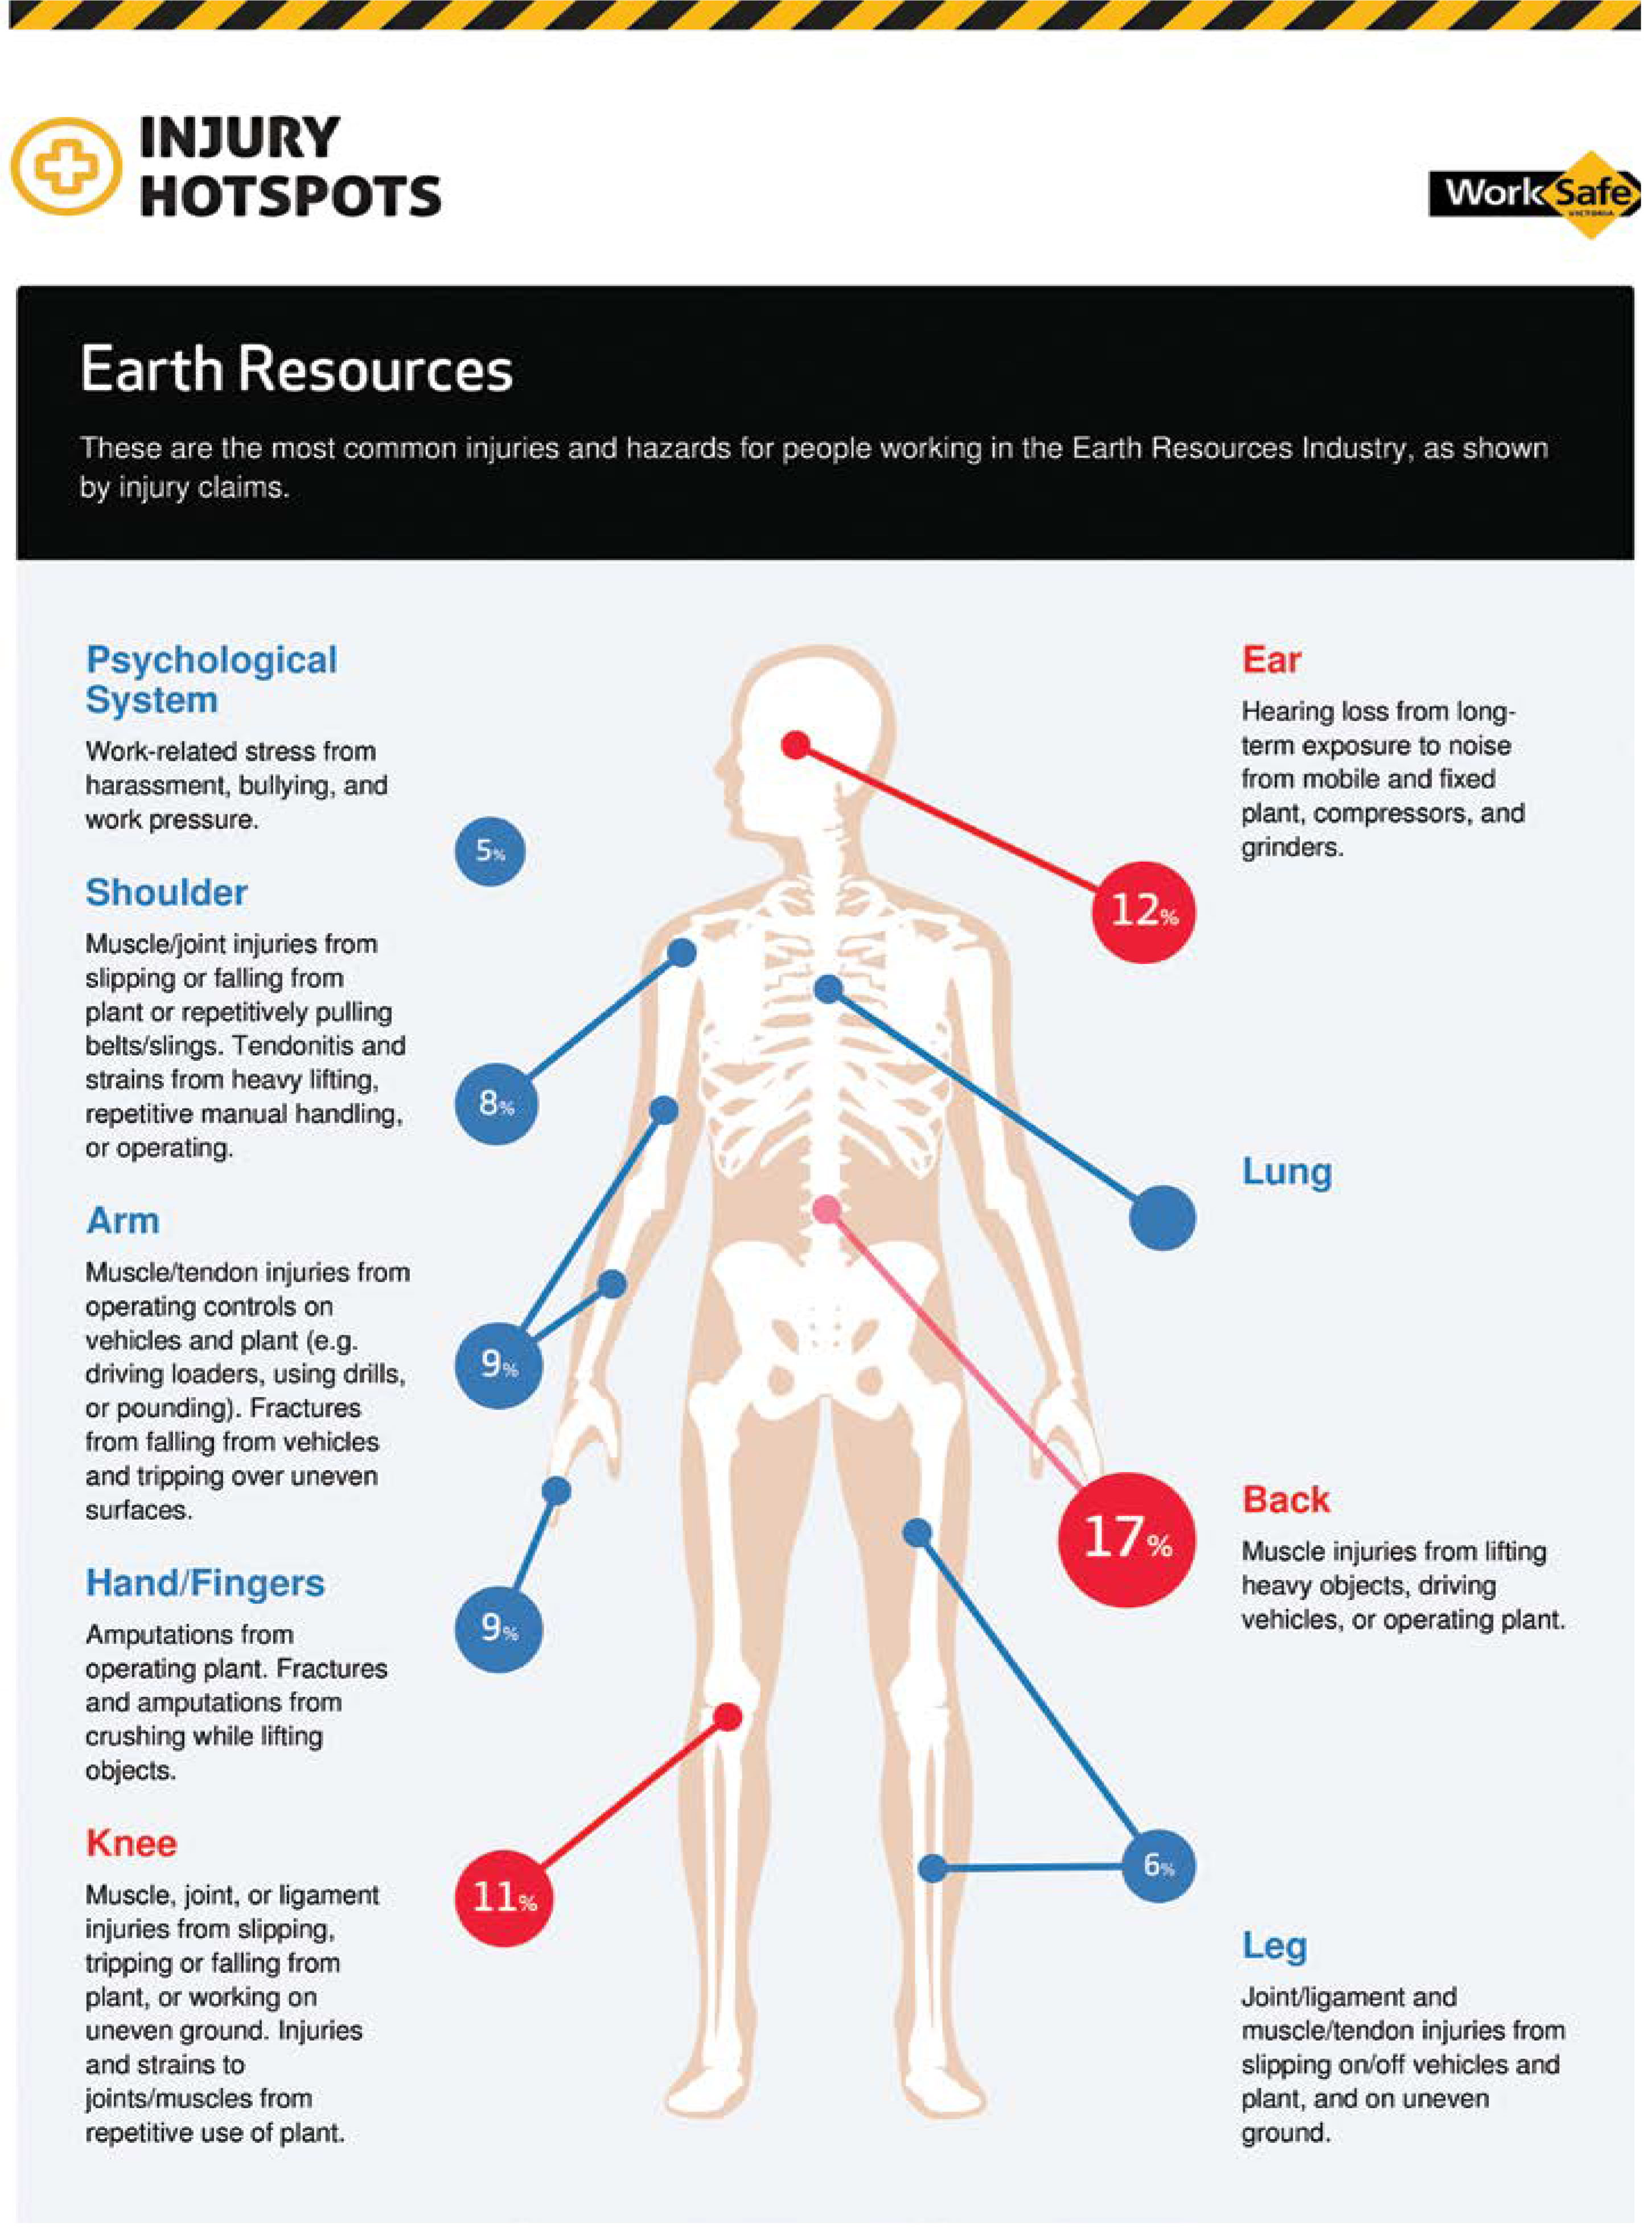 Injury hotspots in the earth resources industry sand stone injury hotspots diagram ccuart Gallery